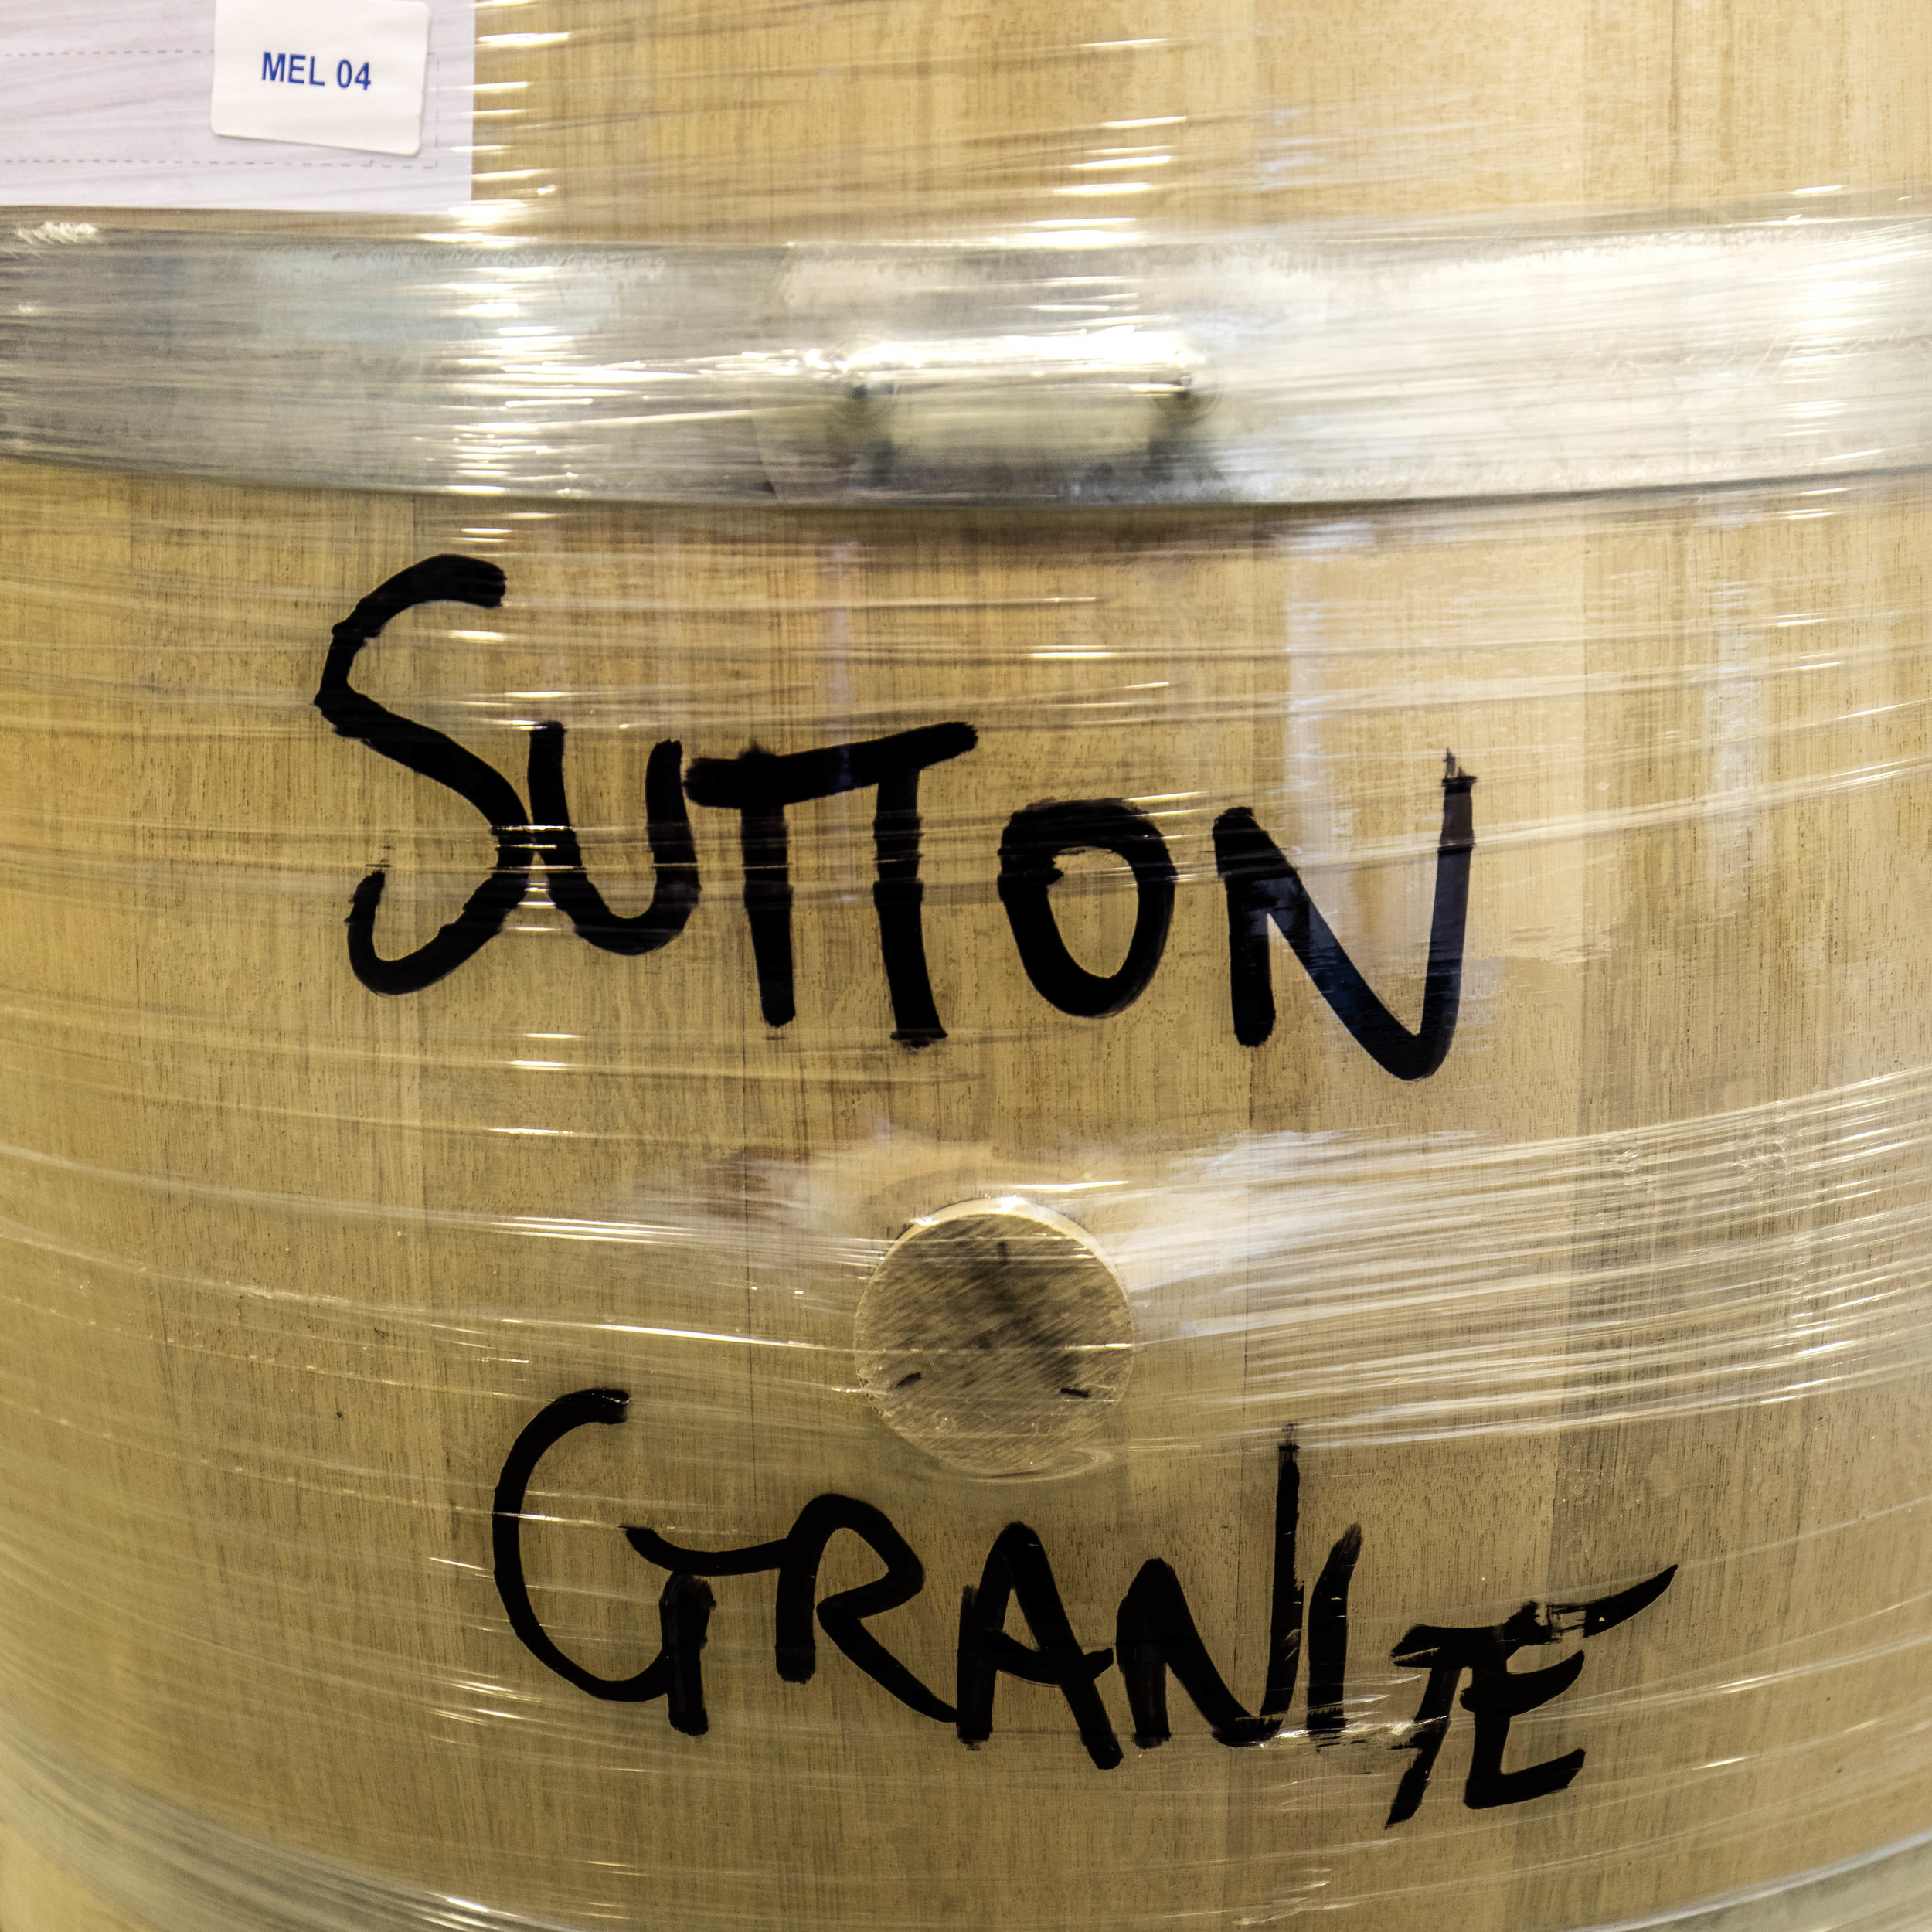 Sunday 7th July - Do you enjoy wine and want to know more about where this glorious stuff comes from? On the weekend of 6th and 7th July, Bendigo region wineries throw open the doors of their barrel rooms so you can taste wine straight from the barrel.Sutton Grange is running three sessions on Sunday 7th July at 11am, 1pm and 3pm. Mel, our winemaker, will take you on a tour of our barrel rooms and give you a hint of the romance of winemaking with wine samples straight from our tanks and barrels. Bookings are essential so choose your barrel tasting session time and book below.Make sure you make a day of it and visit a range of the fabulous Bendigo wineries - to see what other wineries are participating click here.